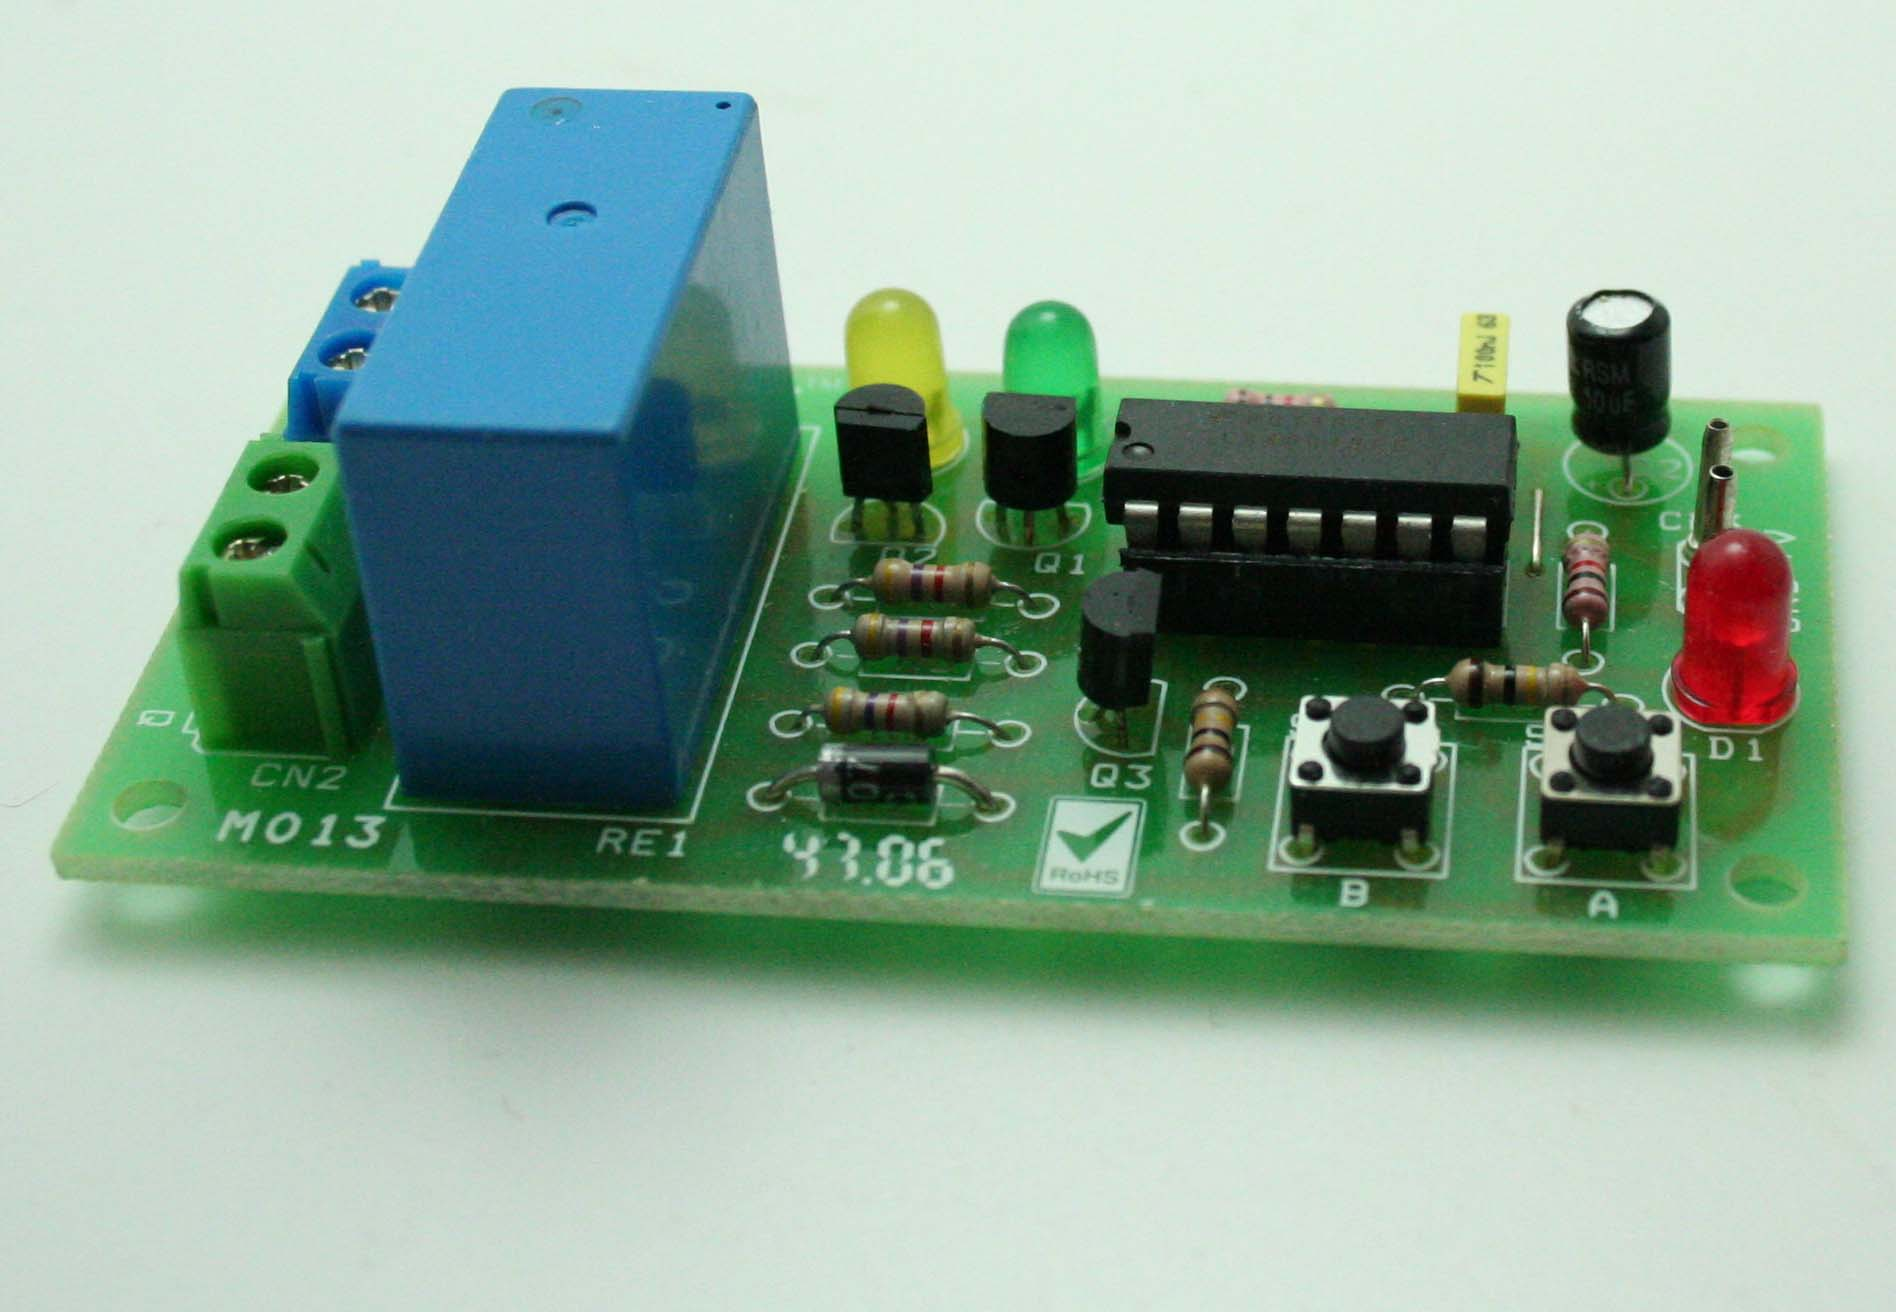 DC MOTOR DIGITAL DIRECTION CONTROLLER USING RELAY (1)